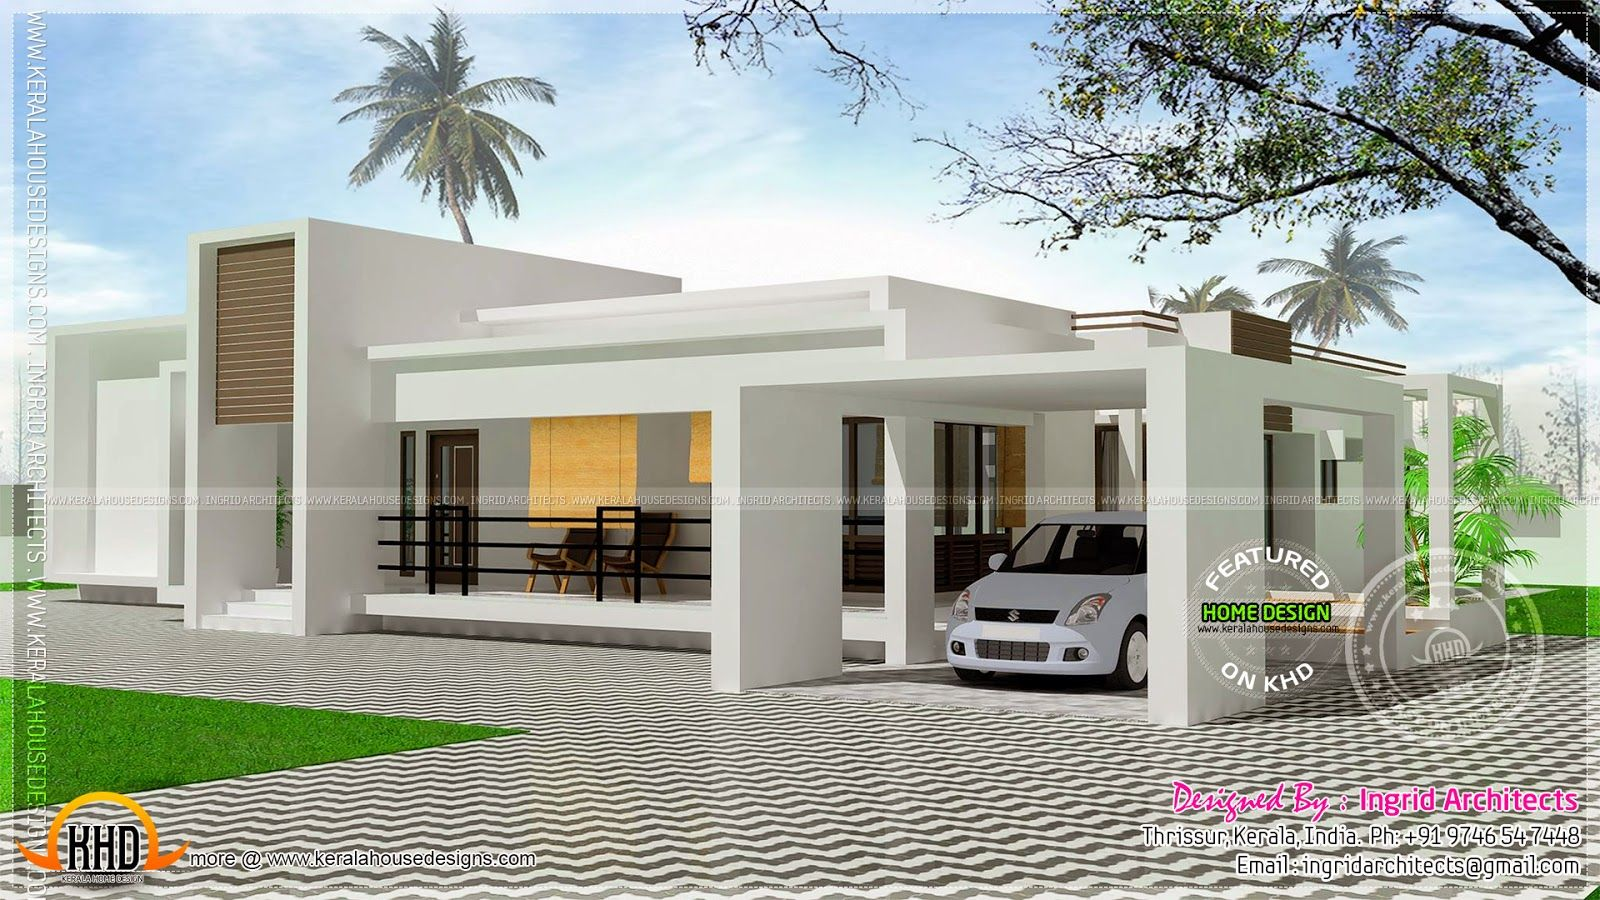 View Best Single Floor House Plans Luxury Home Design Contemporary. elevations of single storey residential buildings   Google Search